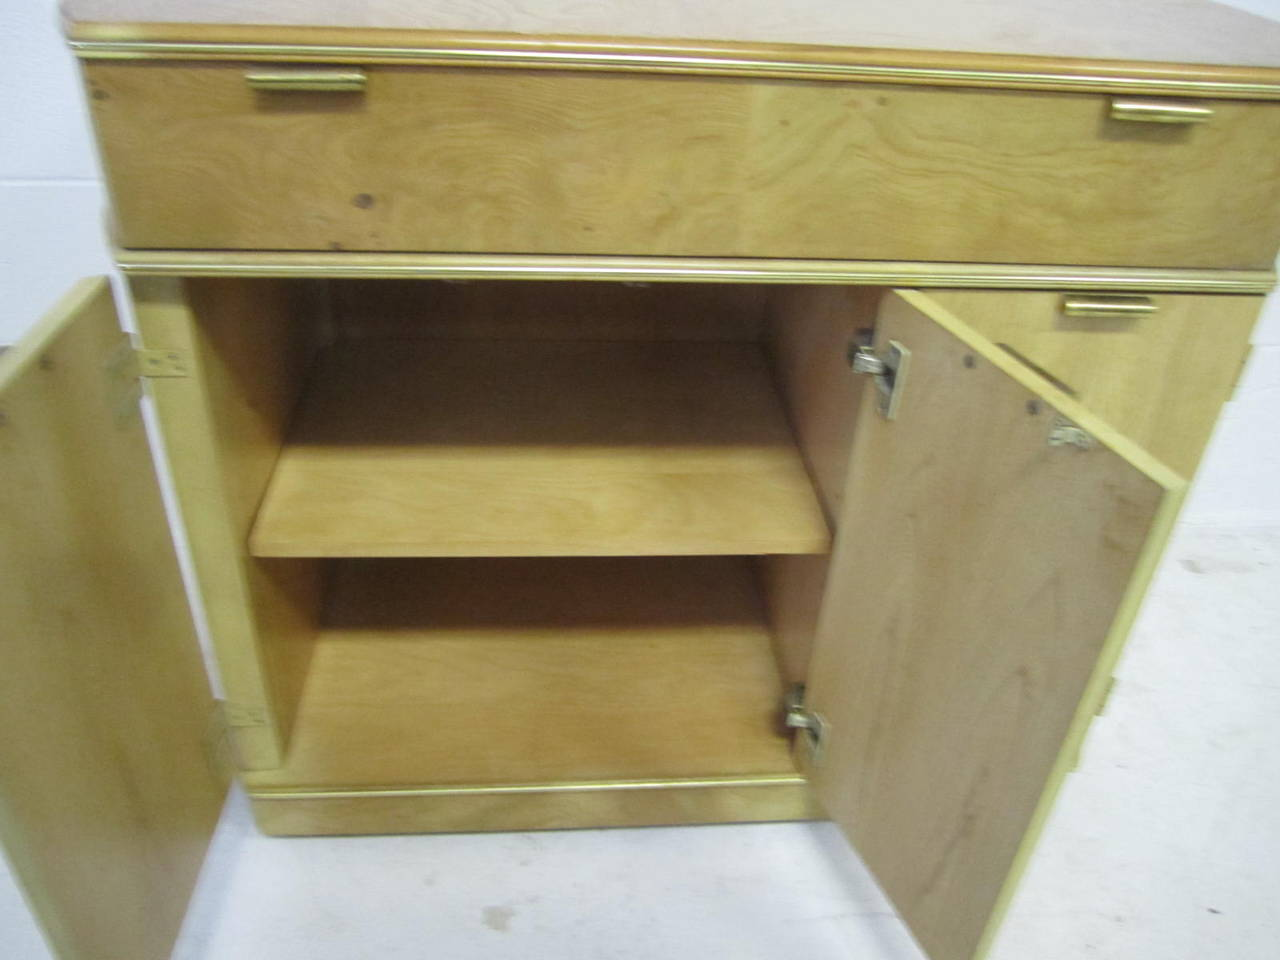 Delightful American of Martinsville Burled Light Wood Bar Cart Mid-Century In Good Condition For Sale In Pemberton, NJ